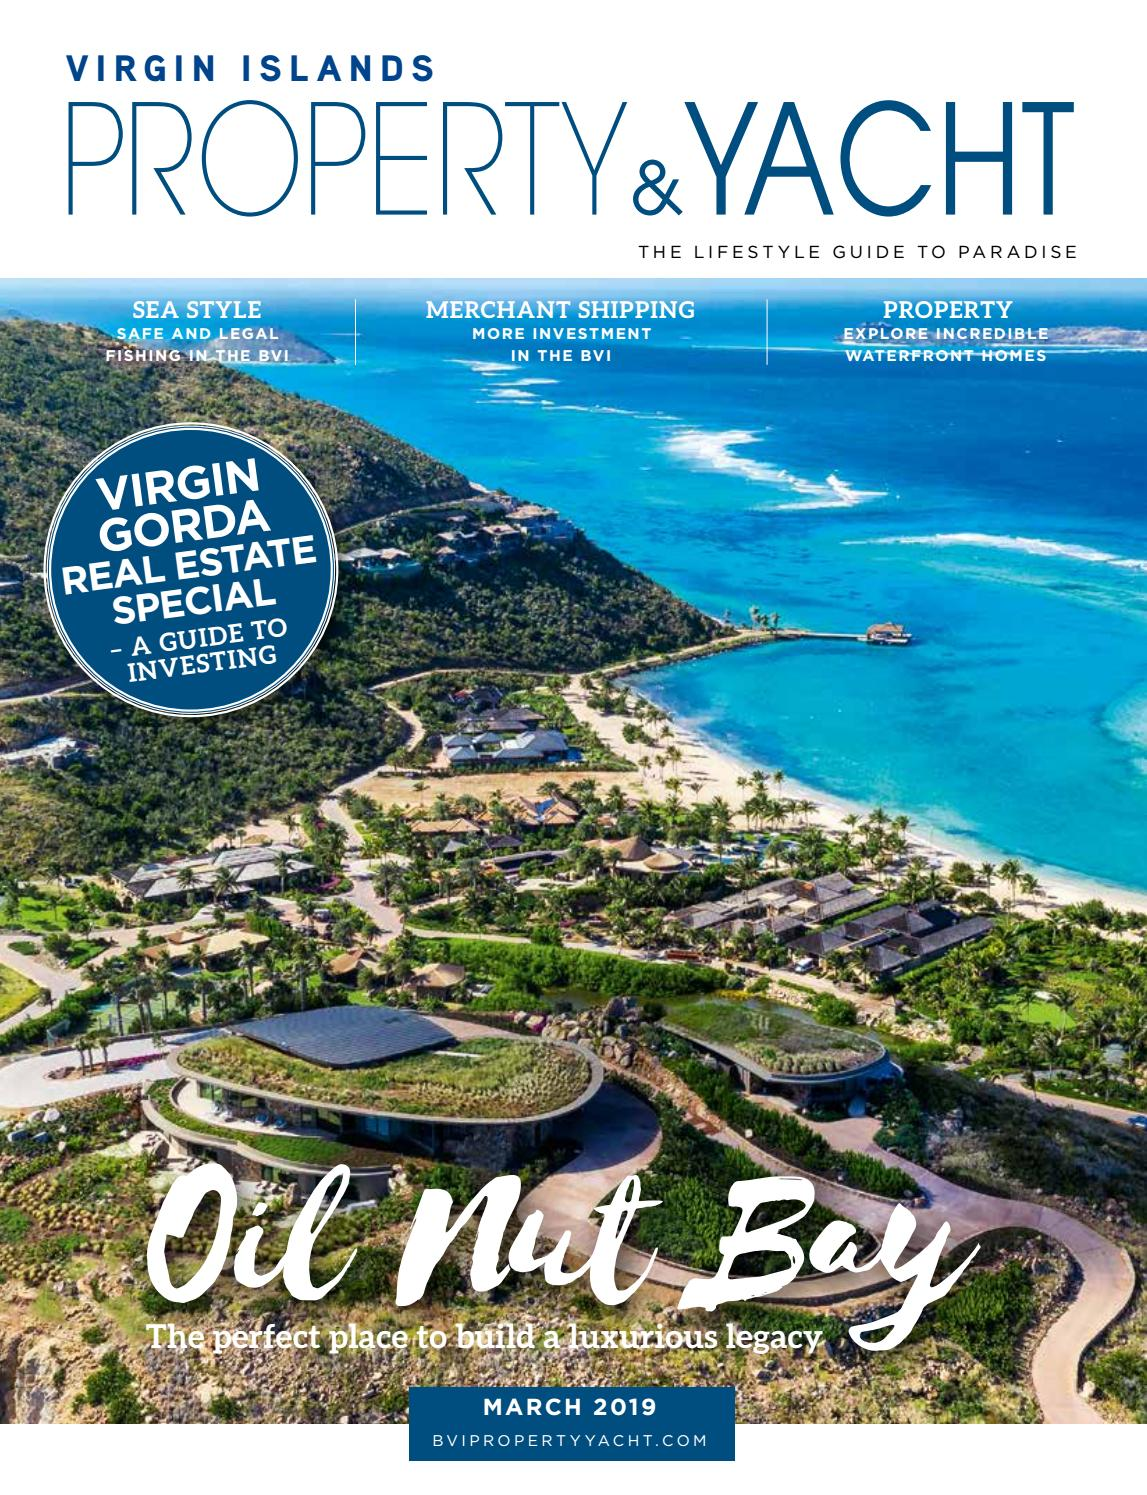 Virgin Islands Property & Yacht - March 2019 by aLookingGlass, BVI - issuu